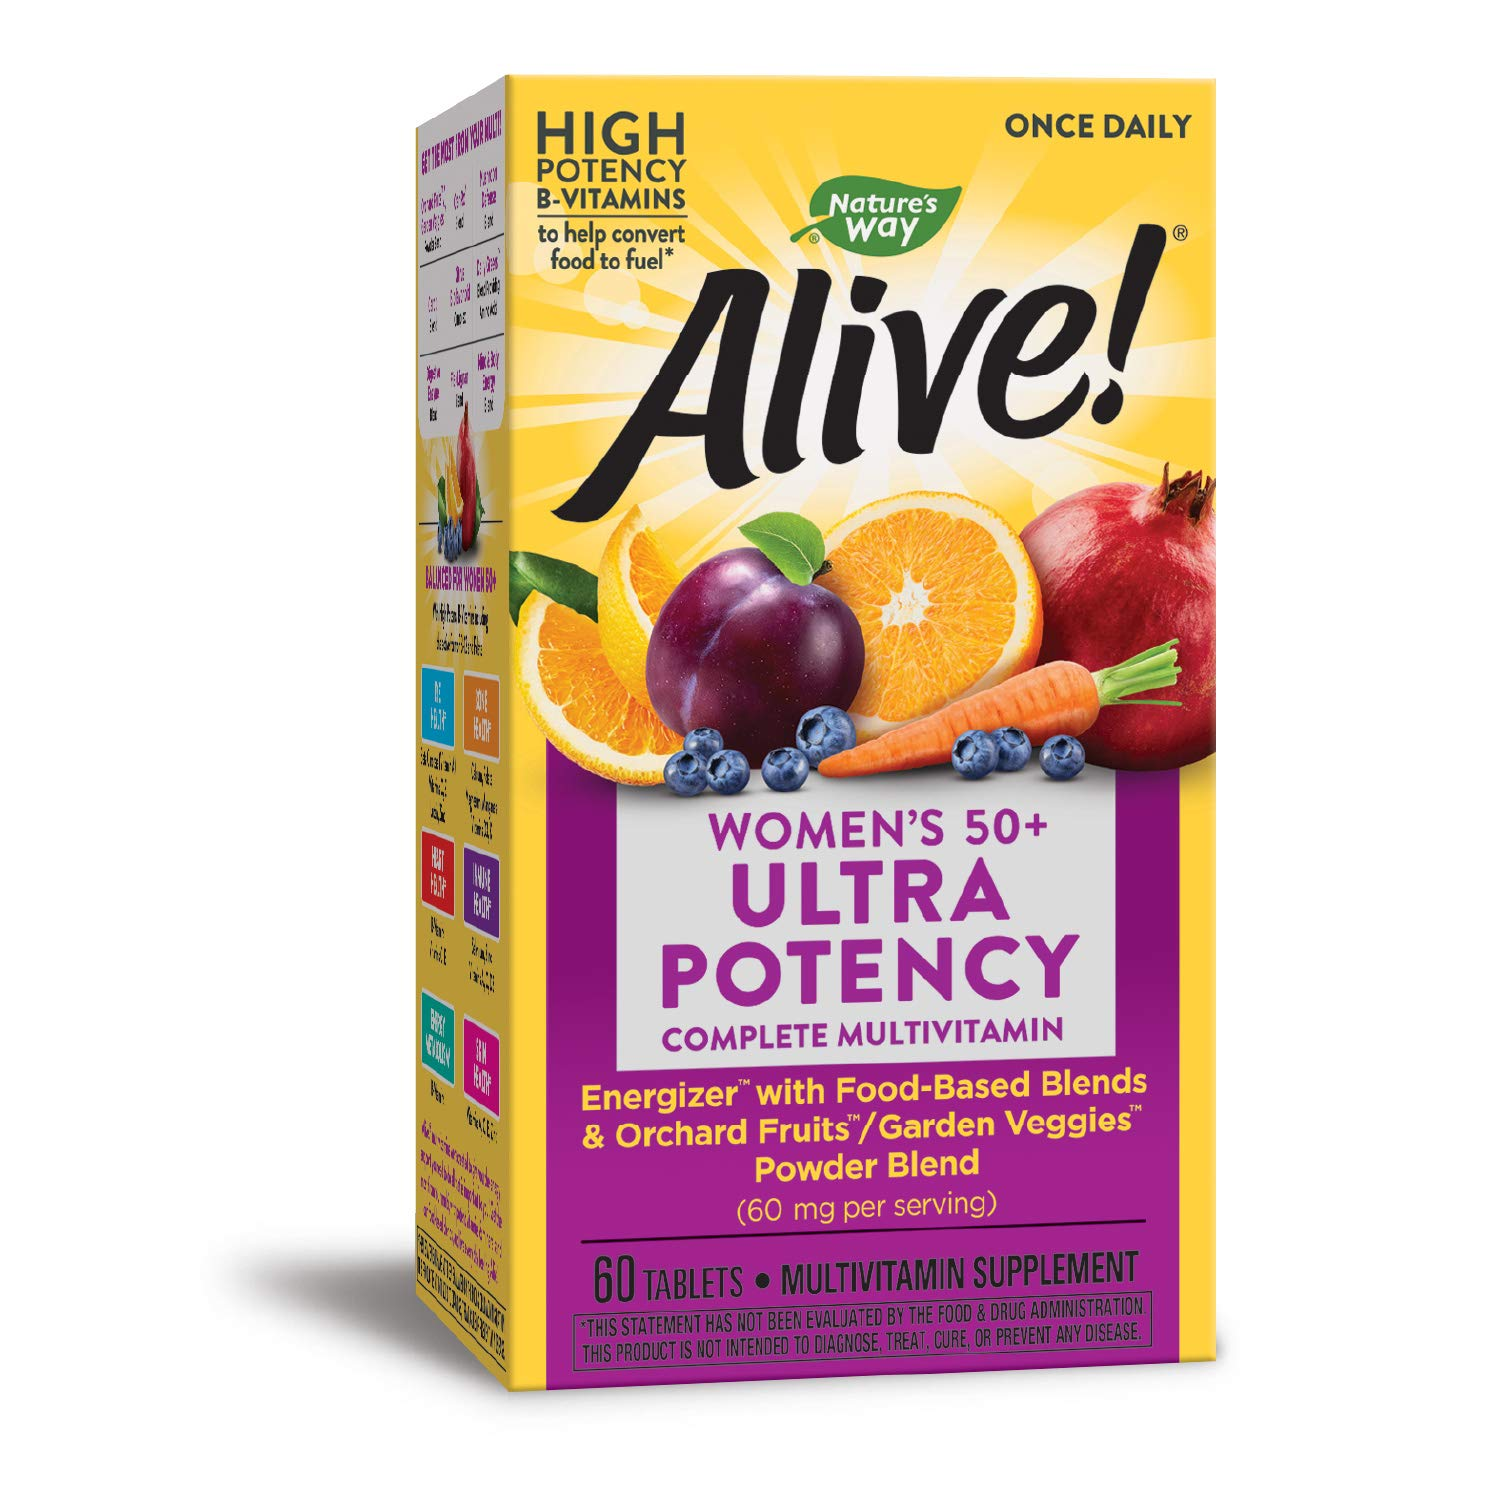 Nature's Way Alive! Once Daily Women's 50+ Multivitamin